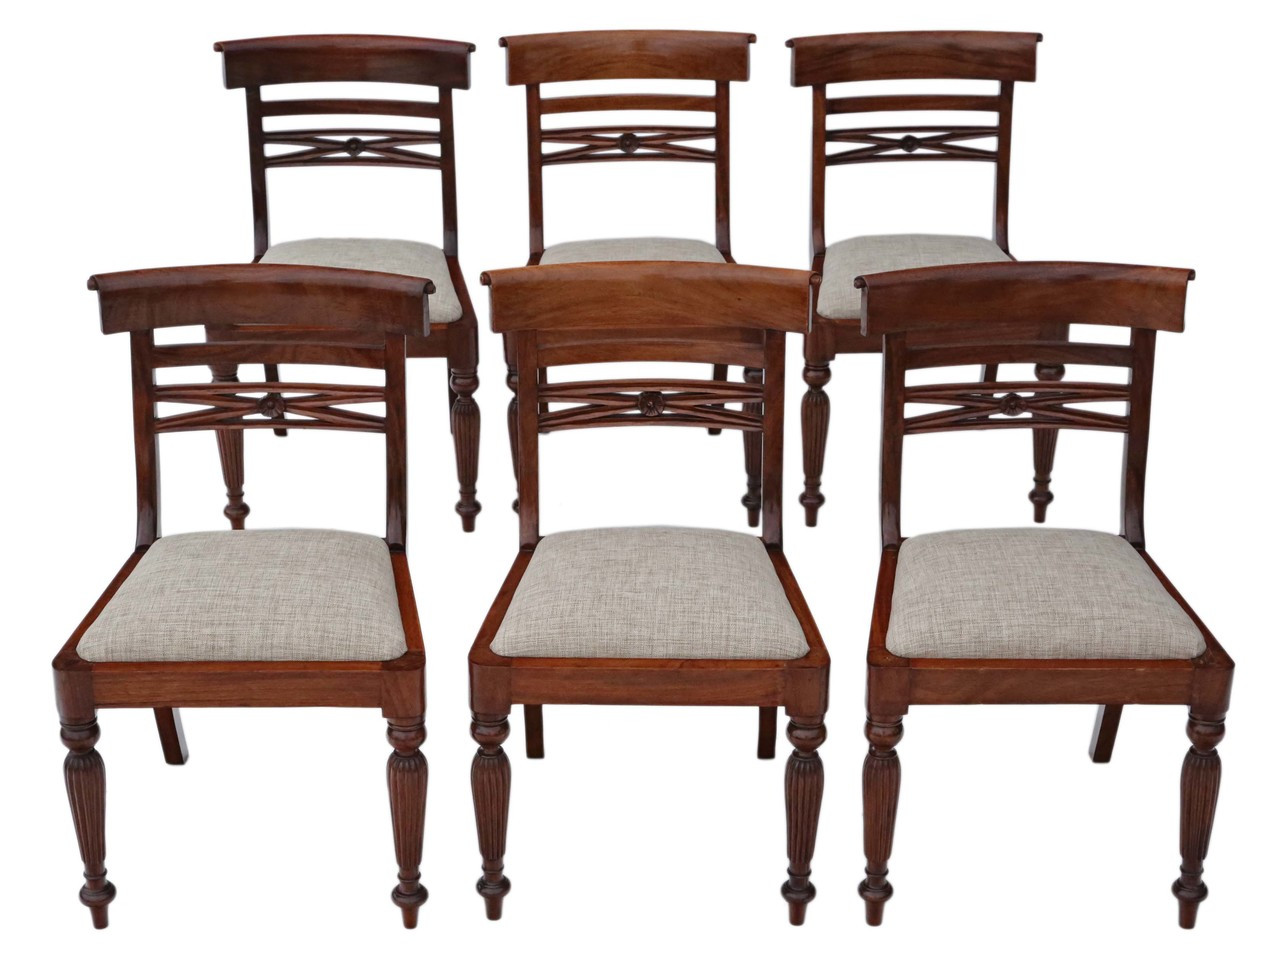 Antique Quality Set Of 6 Reproduction Regency Style Dining Chairs Prior Willis Antiques